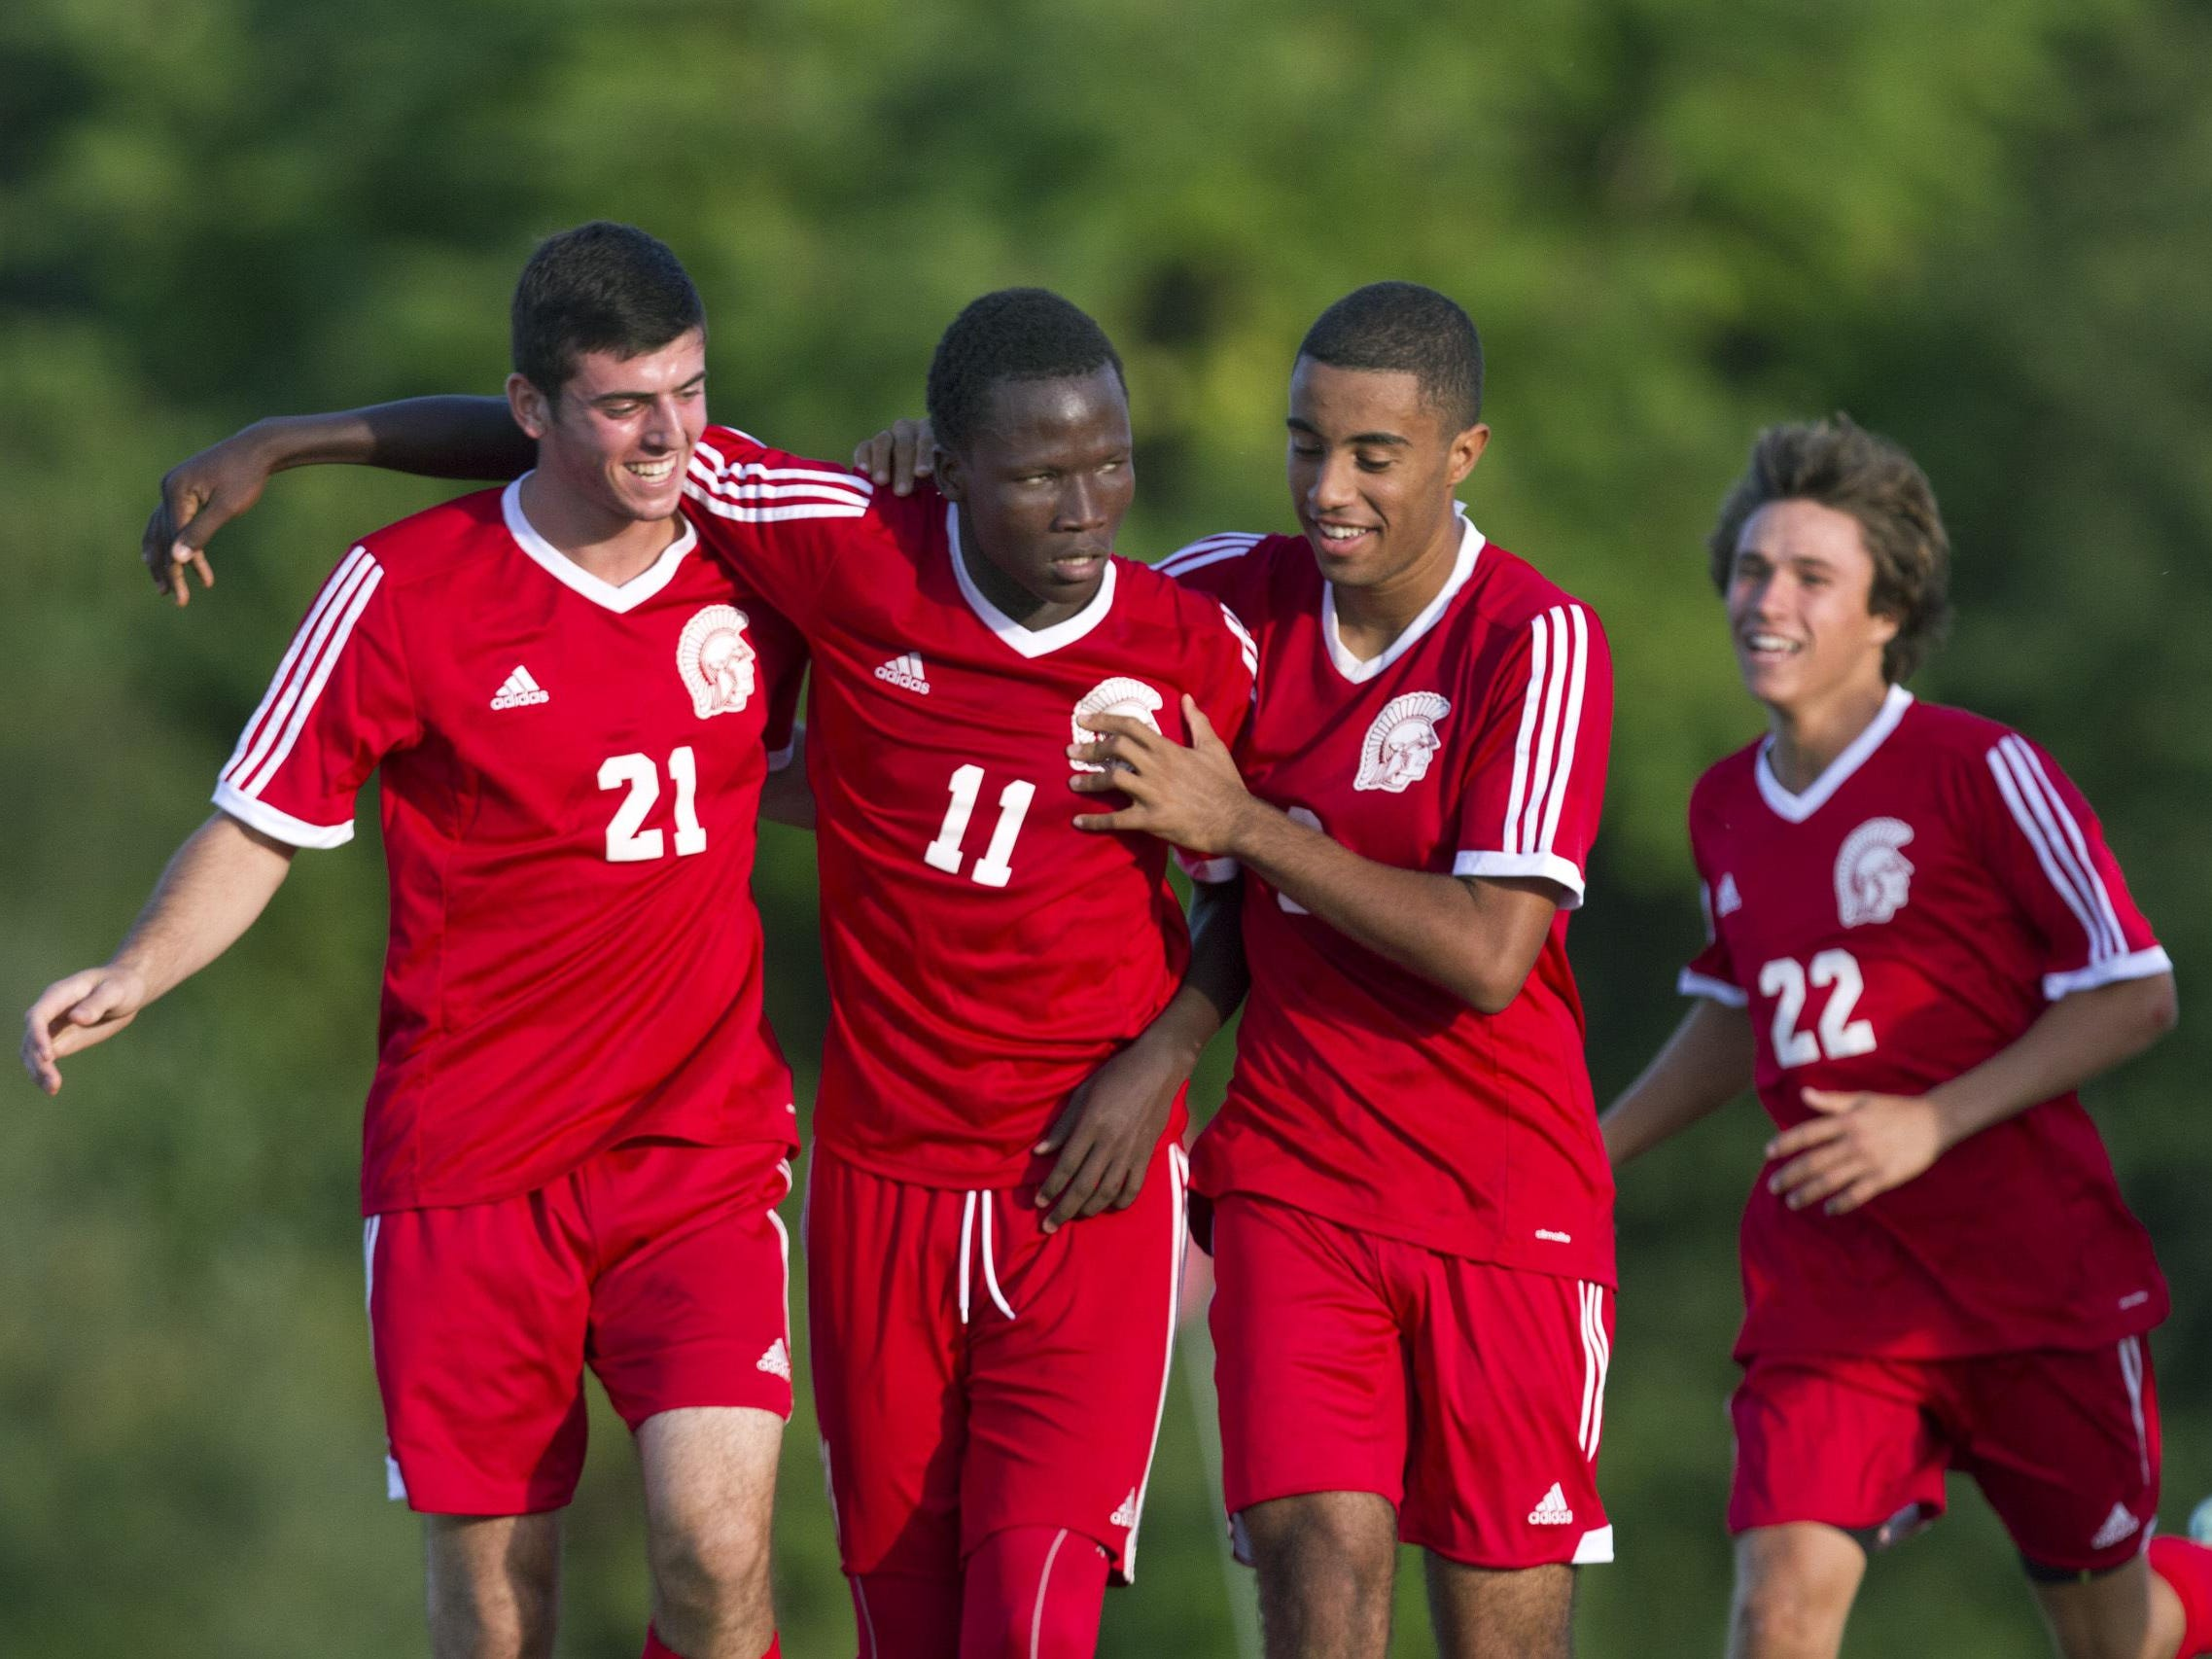 Ocean's Marlhens Nasenes is mobbed by team mates after scoring the winning goal minutes into overtime to break the 1-1 tie with Colts Neck. Ocean vs Colts Neck Boys Soccer in Colts Neck, NJ on September 24, 2015.